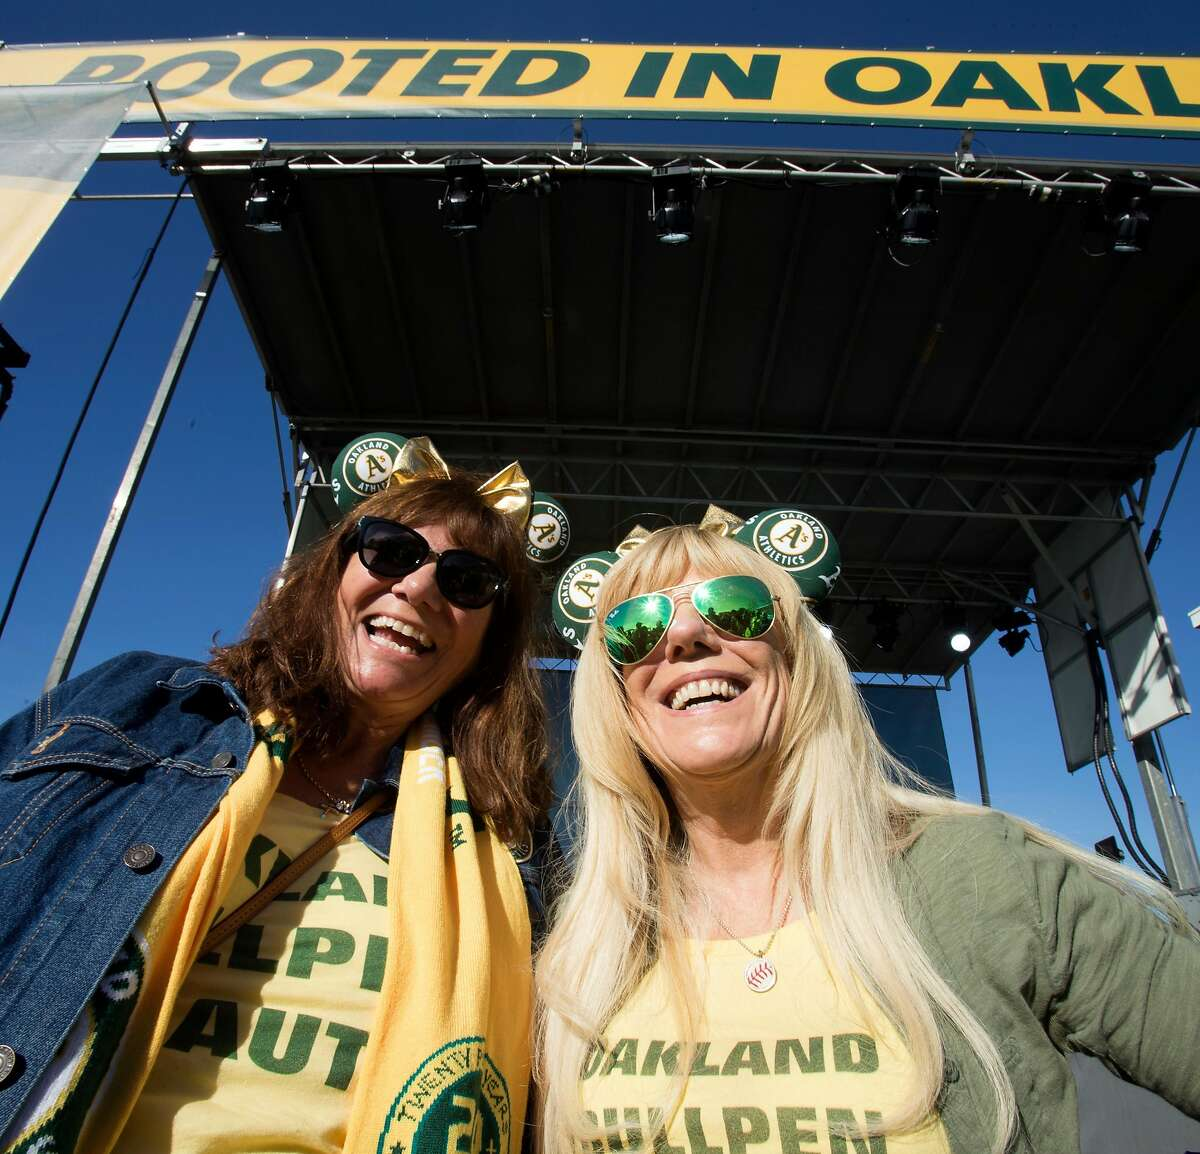 Alicia Puccinelli of San Jose, left, and Ane Smith of Livermore, Calif show off their A's paraphernalia during Oakland Athletics Fan Fest at Jack London Square on Saturday, Jan. 27, 2018 in Oakland, Calif.